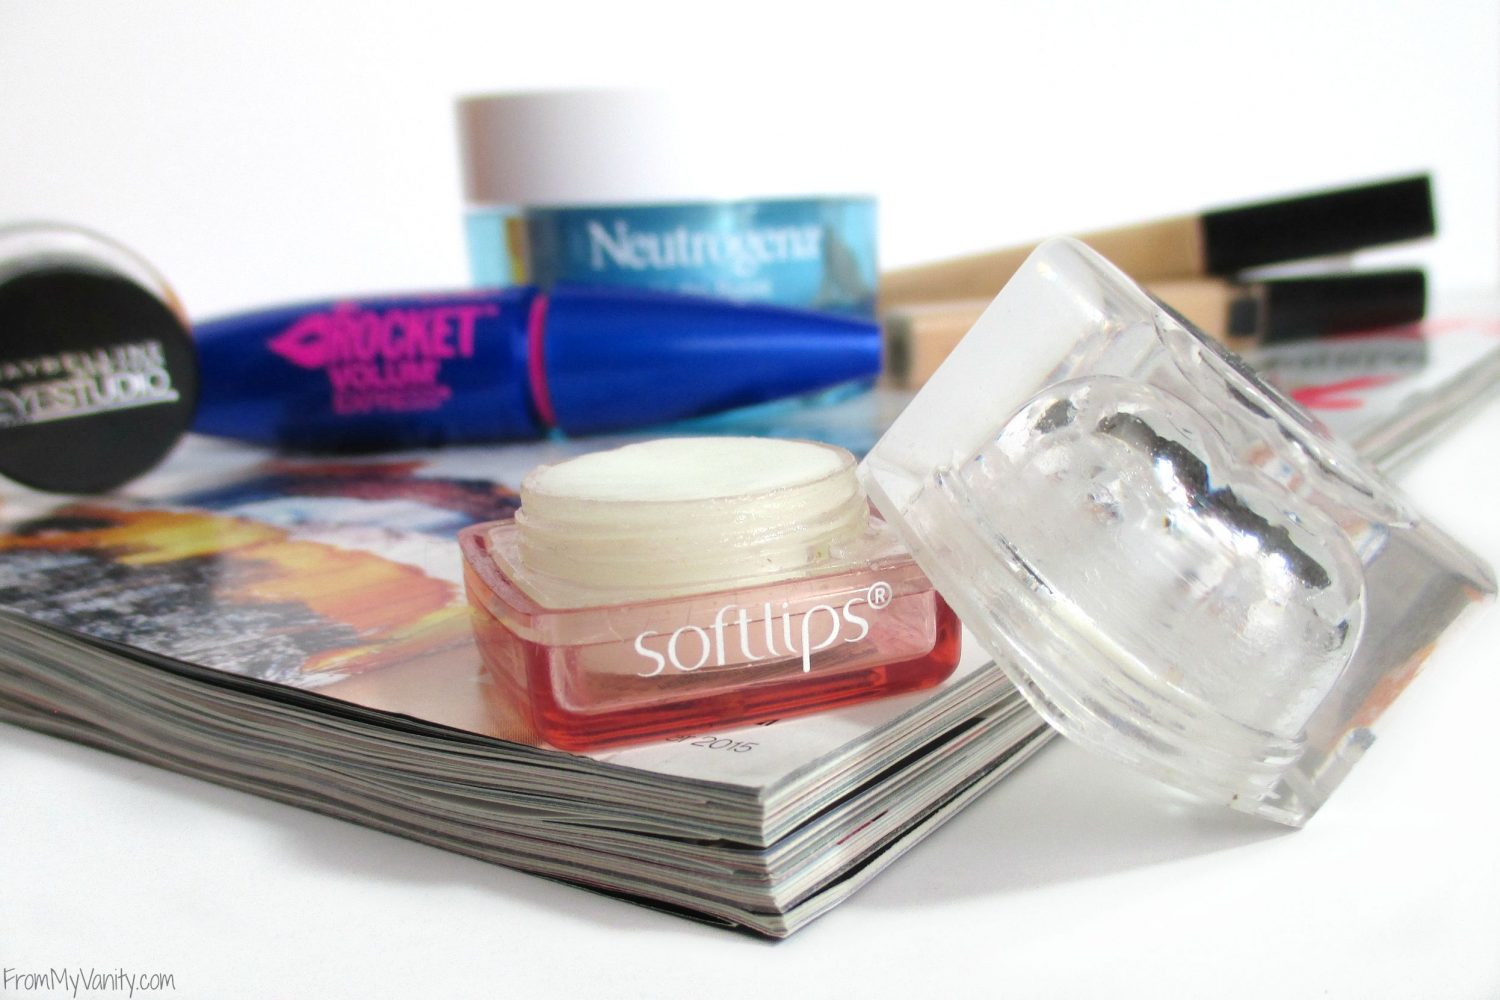 Favorite Drugstore Beauty Buys // Softlips Cube 5-in-1 Lip Care // Elle Sees & From My Vanity